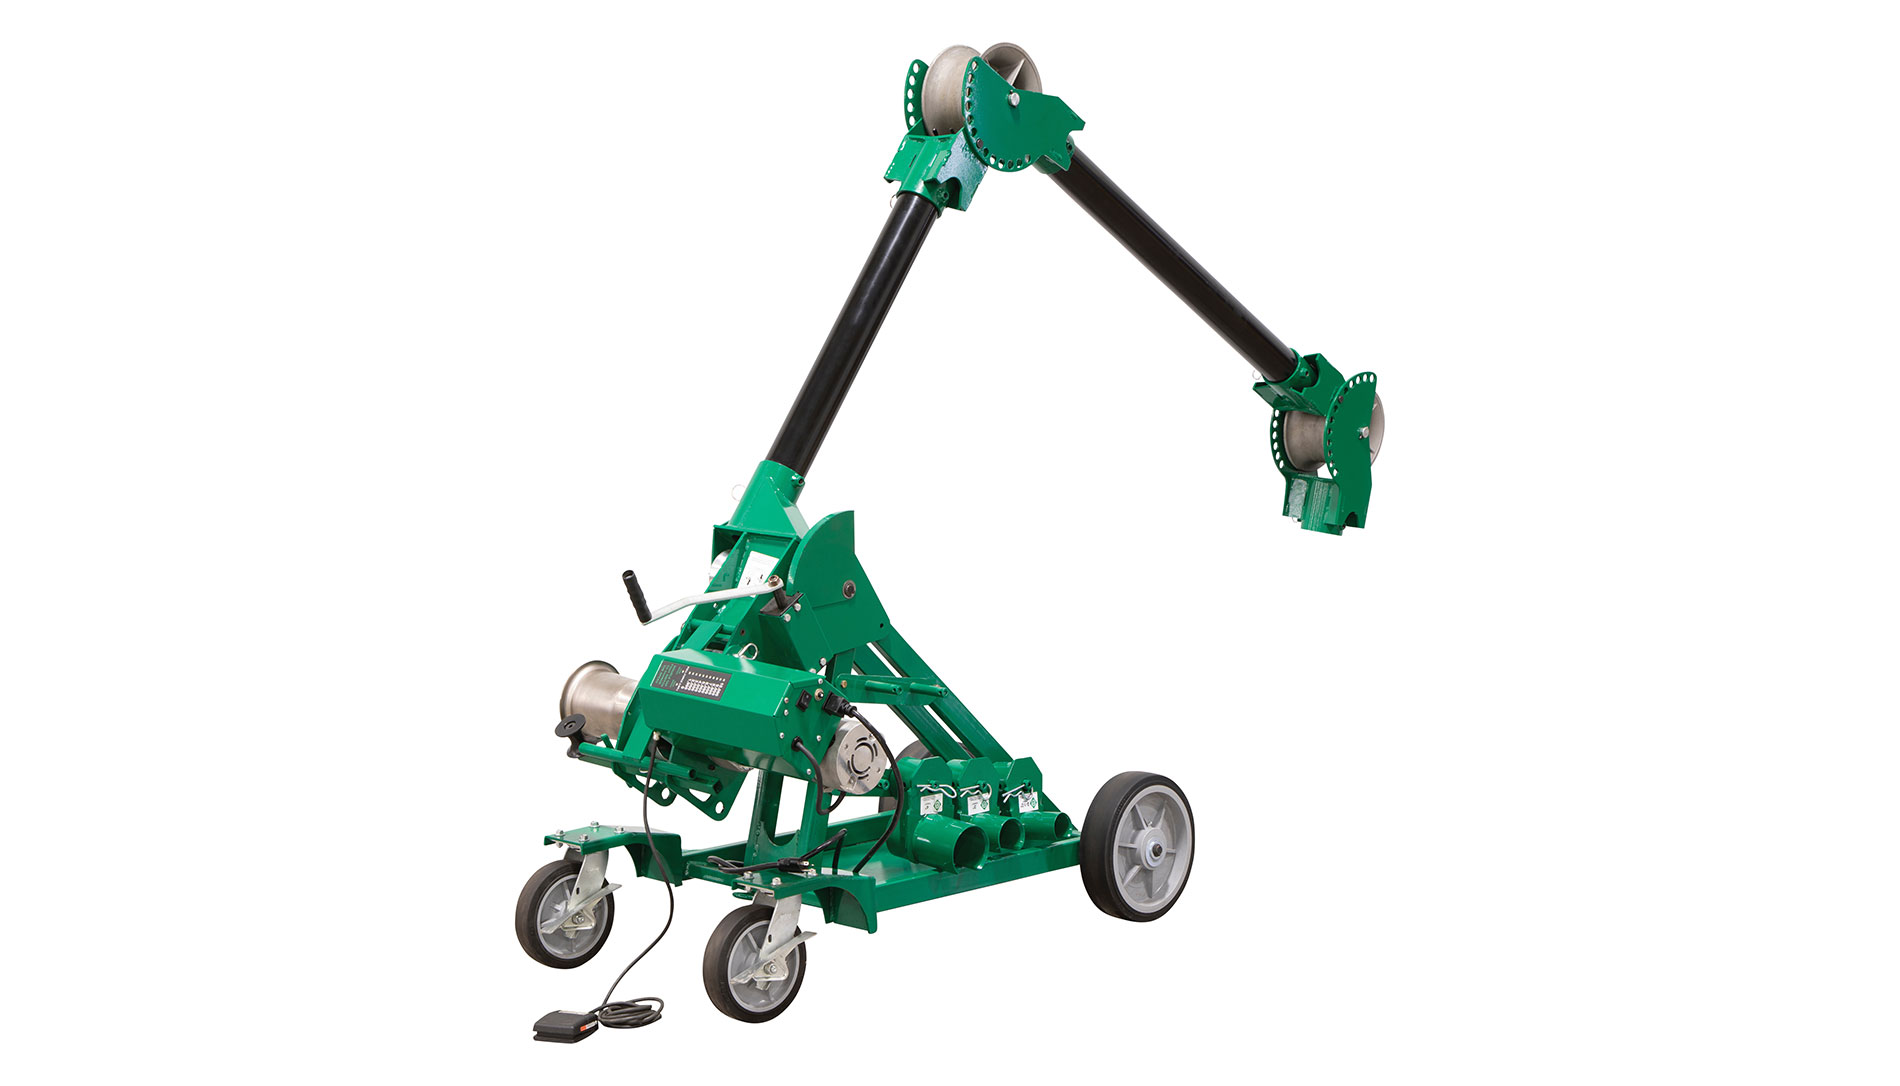 Greenlee G10 1,000-lb. cable puller | www.greenlee.com